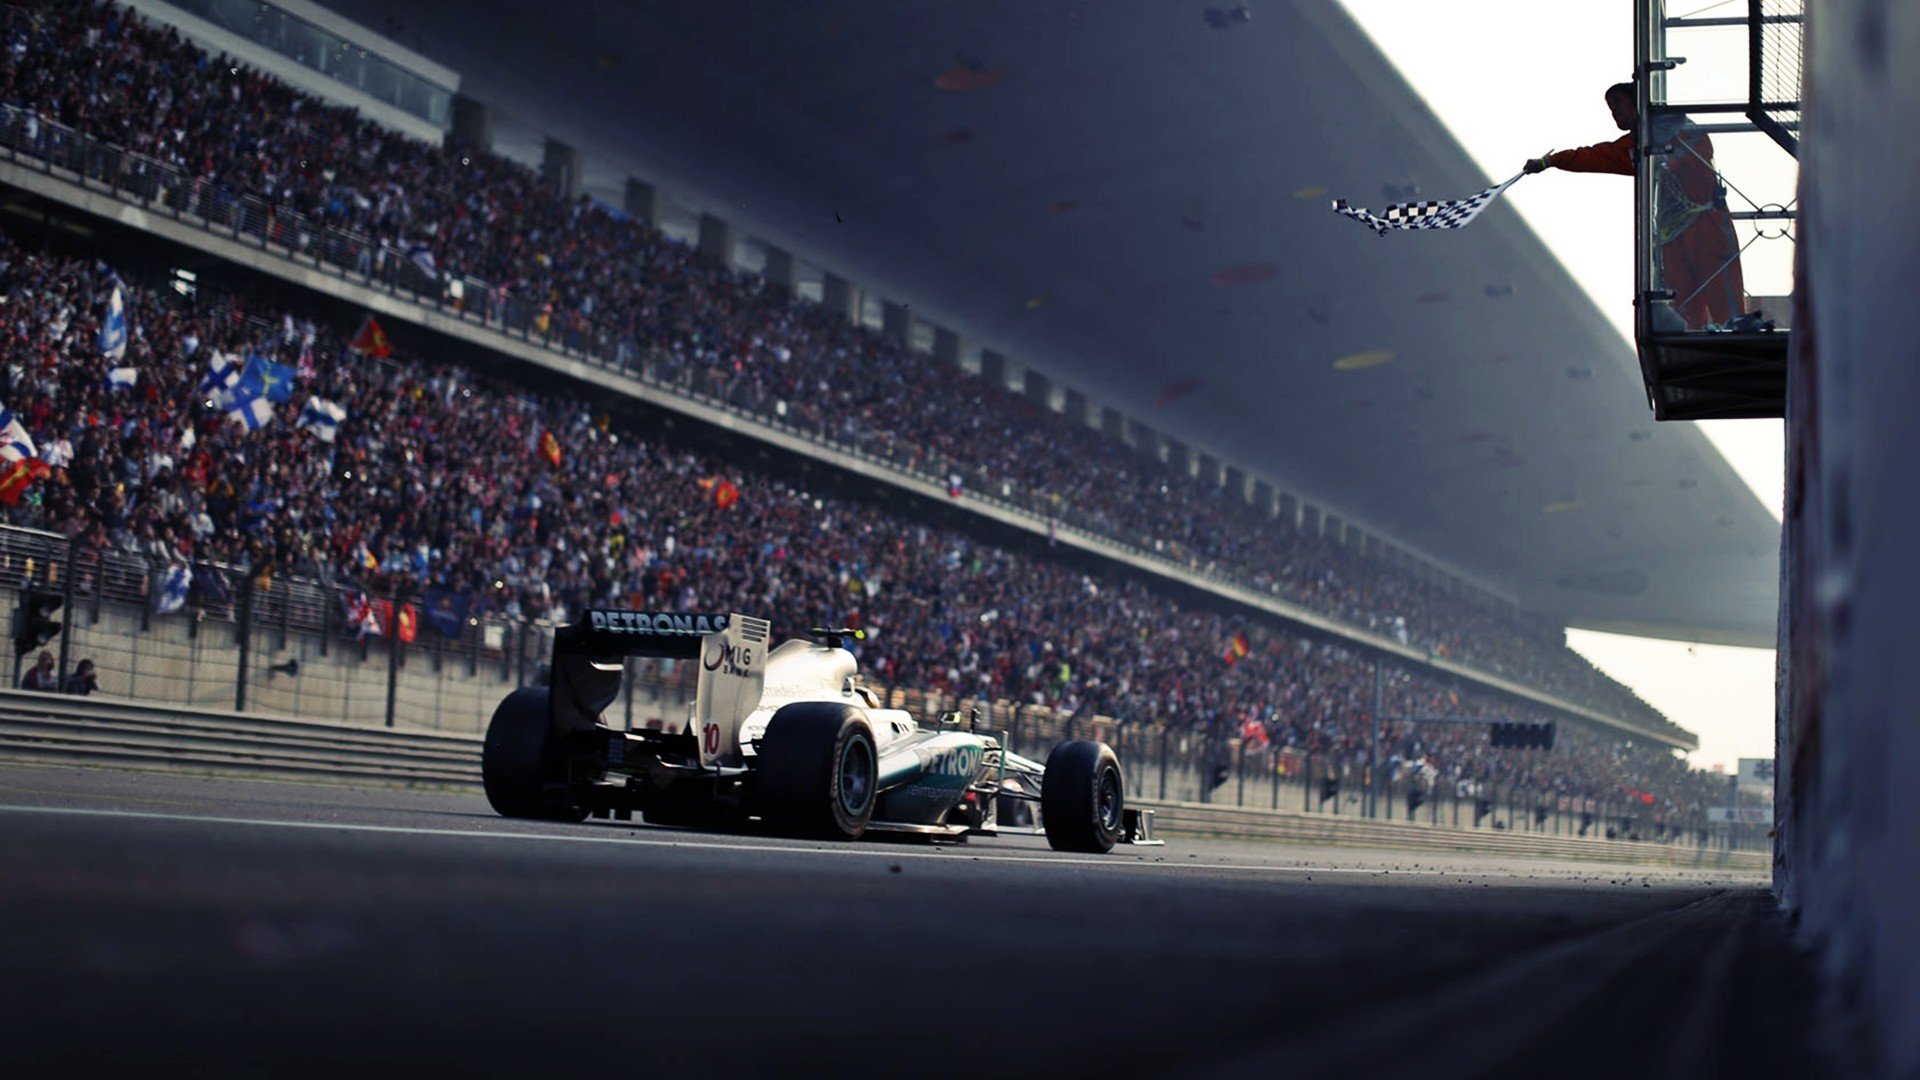 HD wallpapers mercedes f1 wallpaper 2015